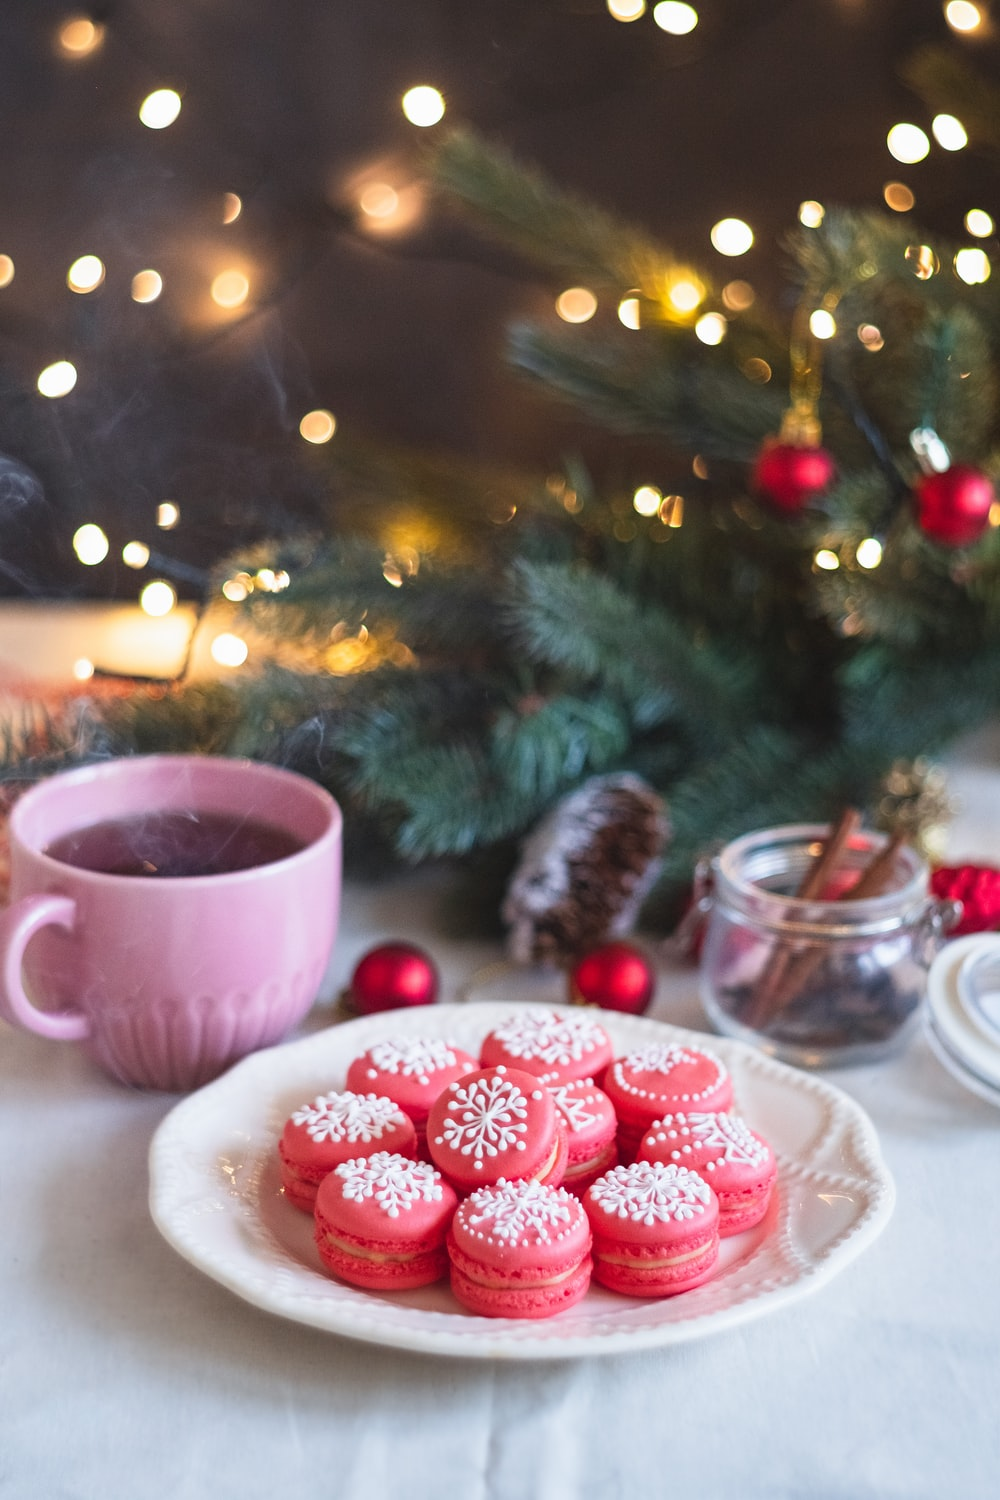 pink ceramic mug beside clear glass bowl with red round fruits